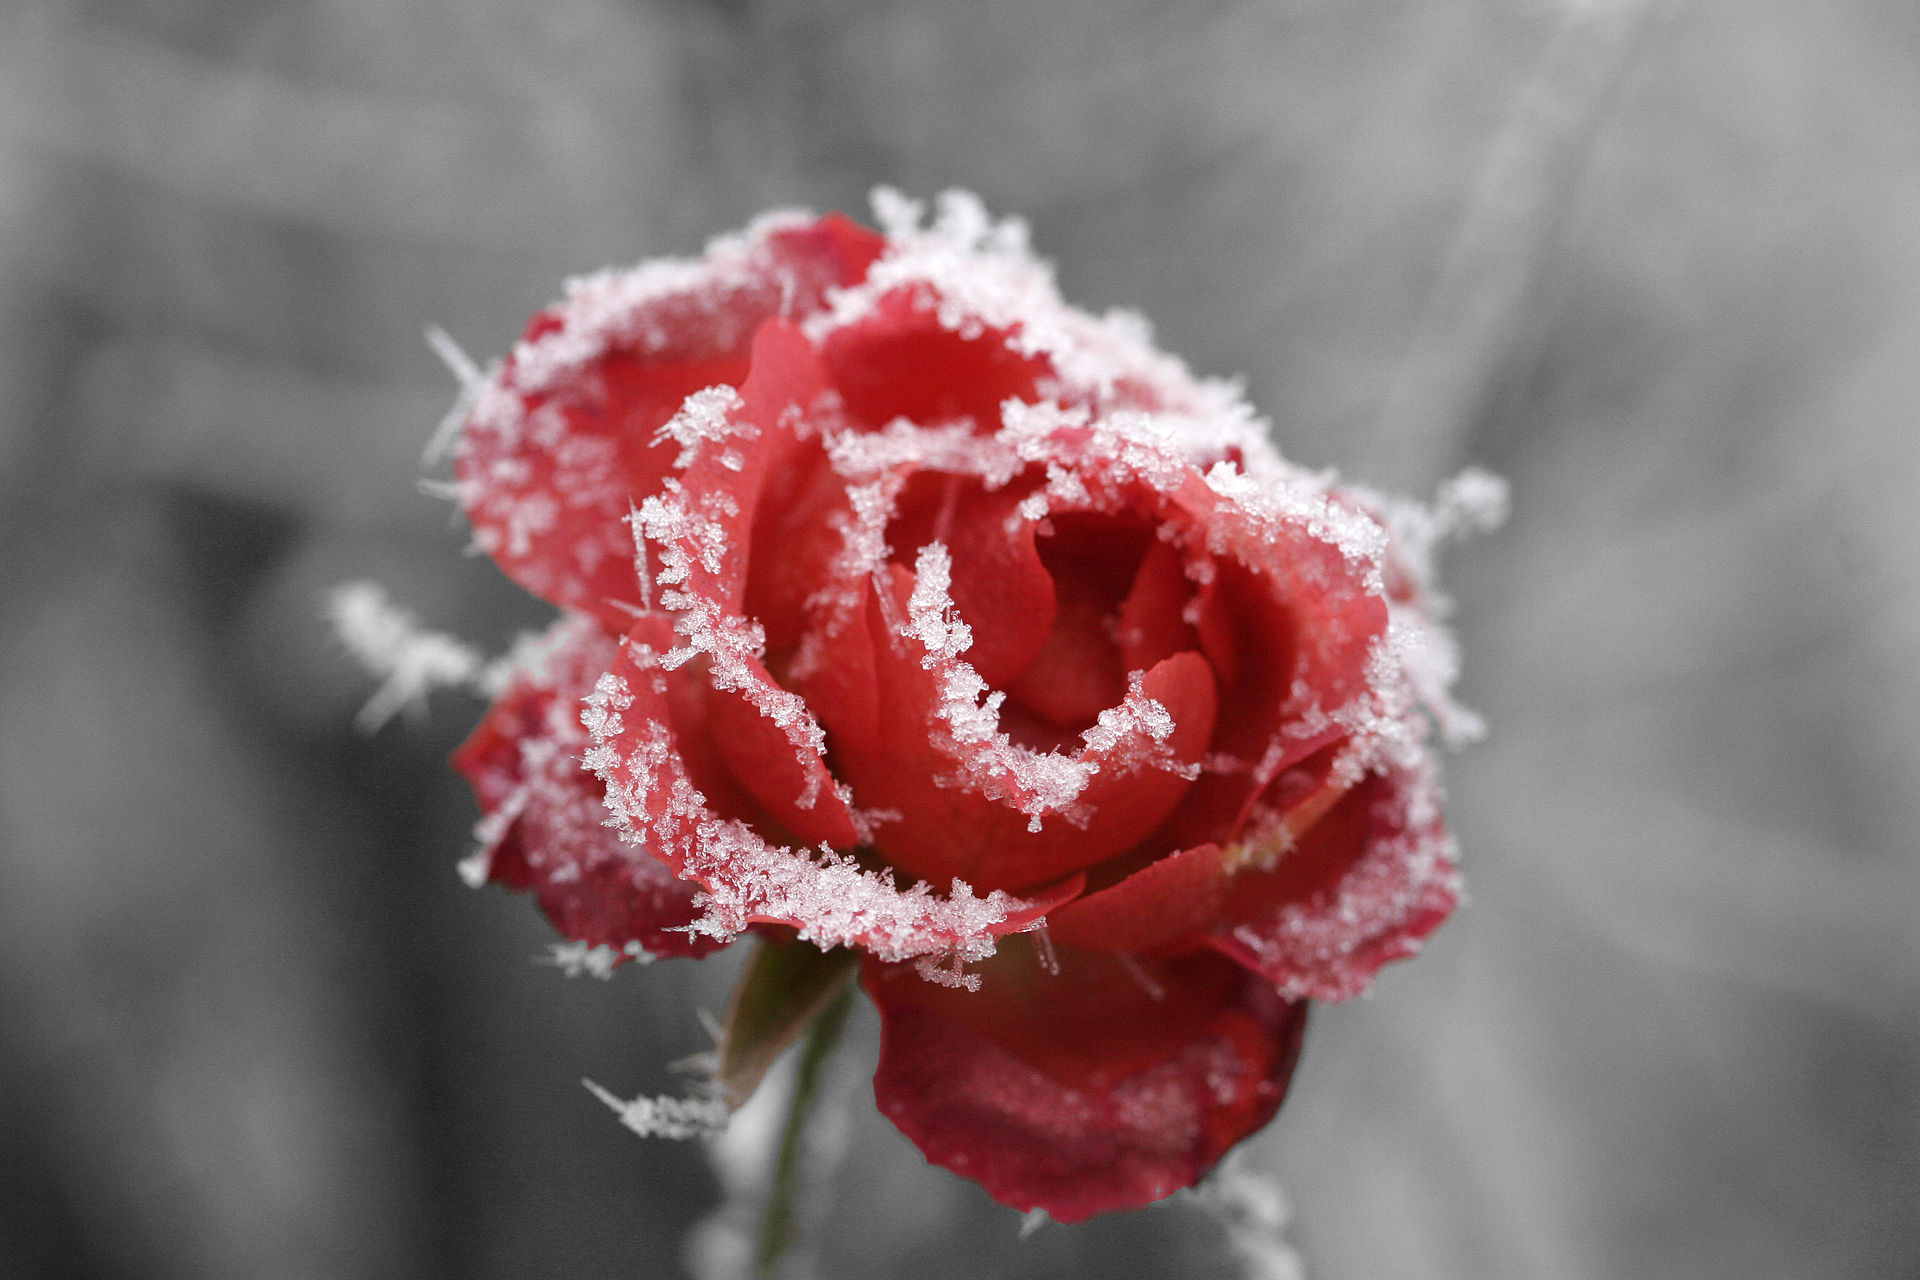 Frosted rose 01.jpg